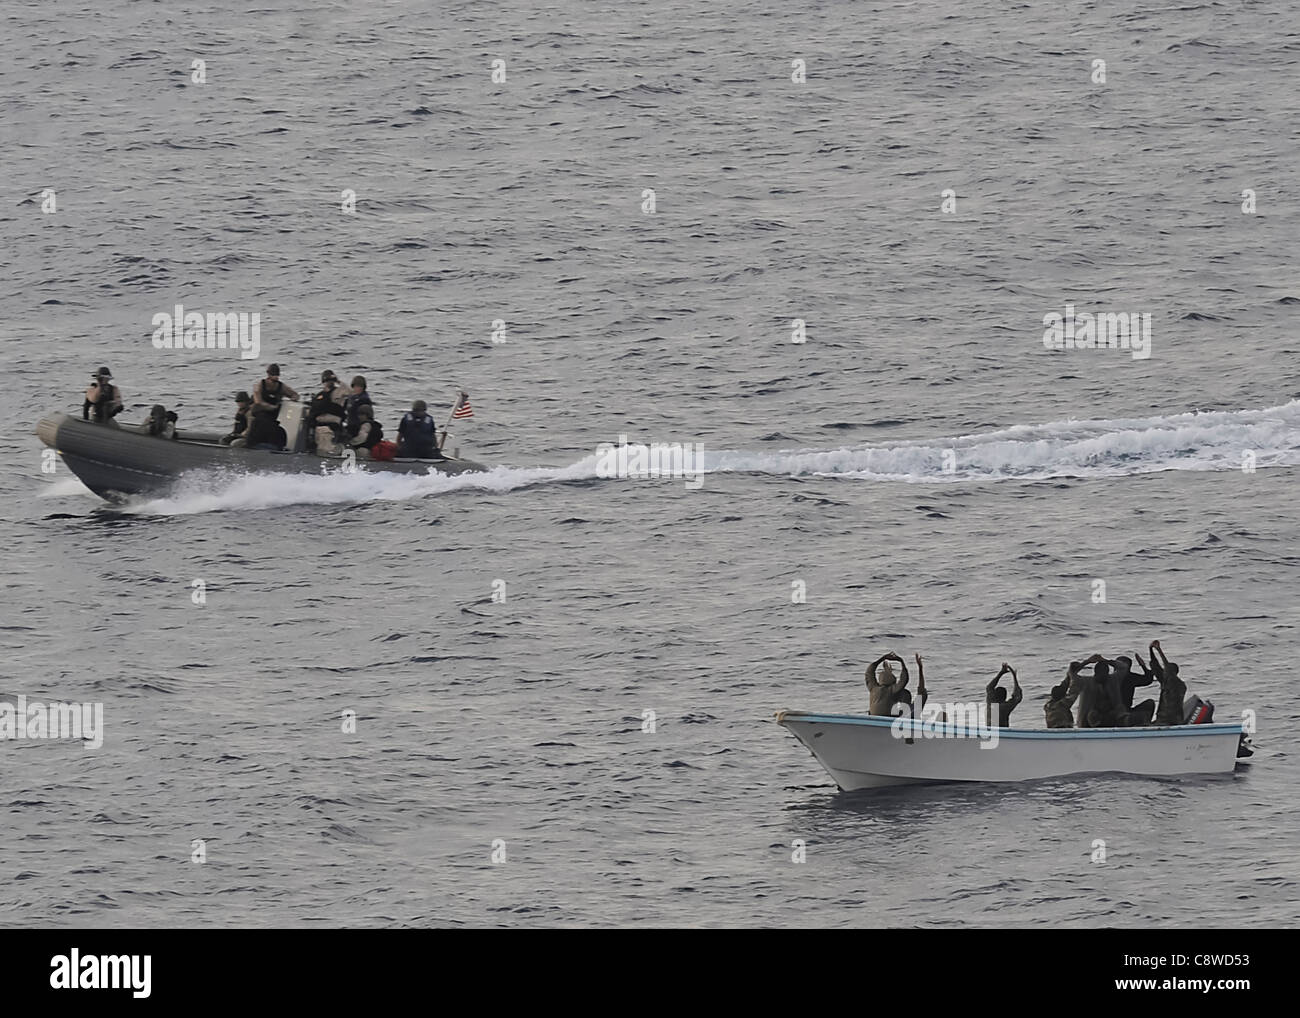 task force conducting counterpiracy operations to detect and deter piracy in and around the Gulf of Aden, Arabian - Stock Image